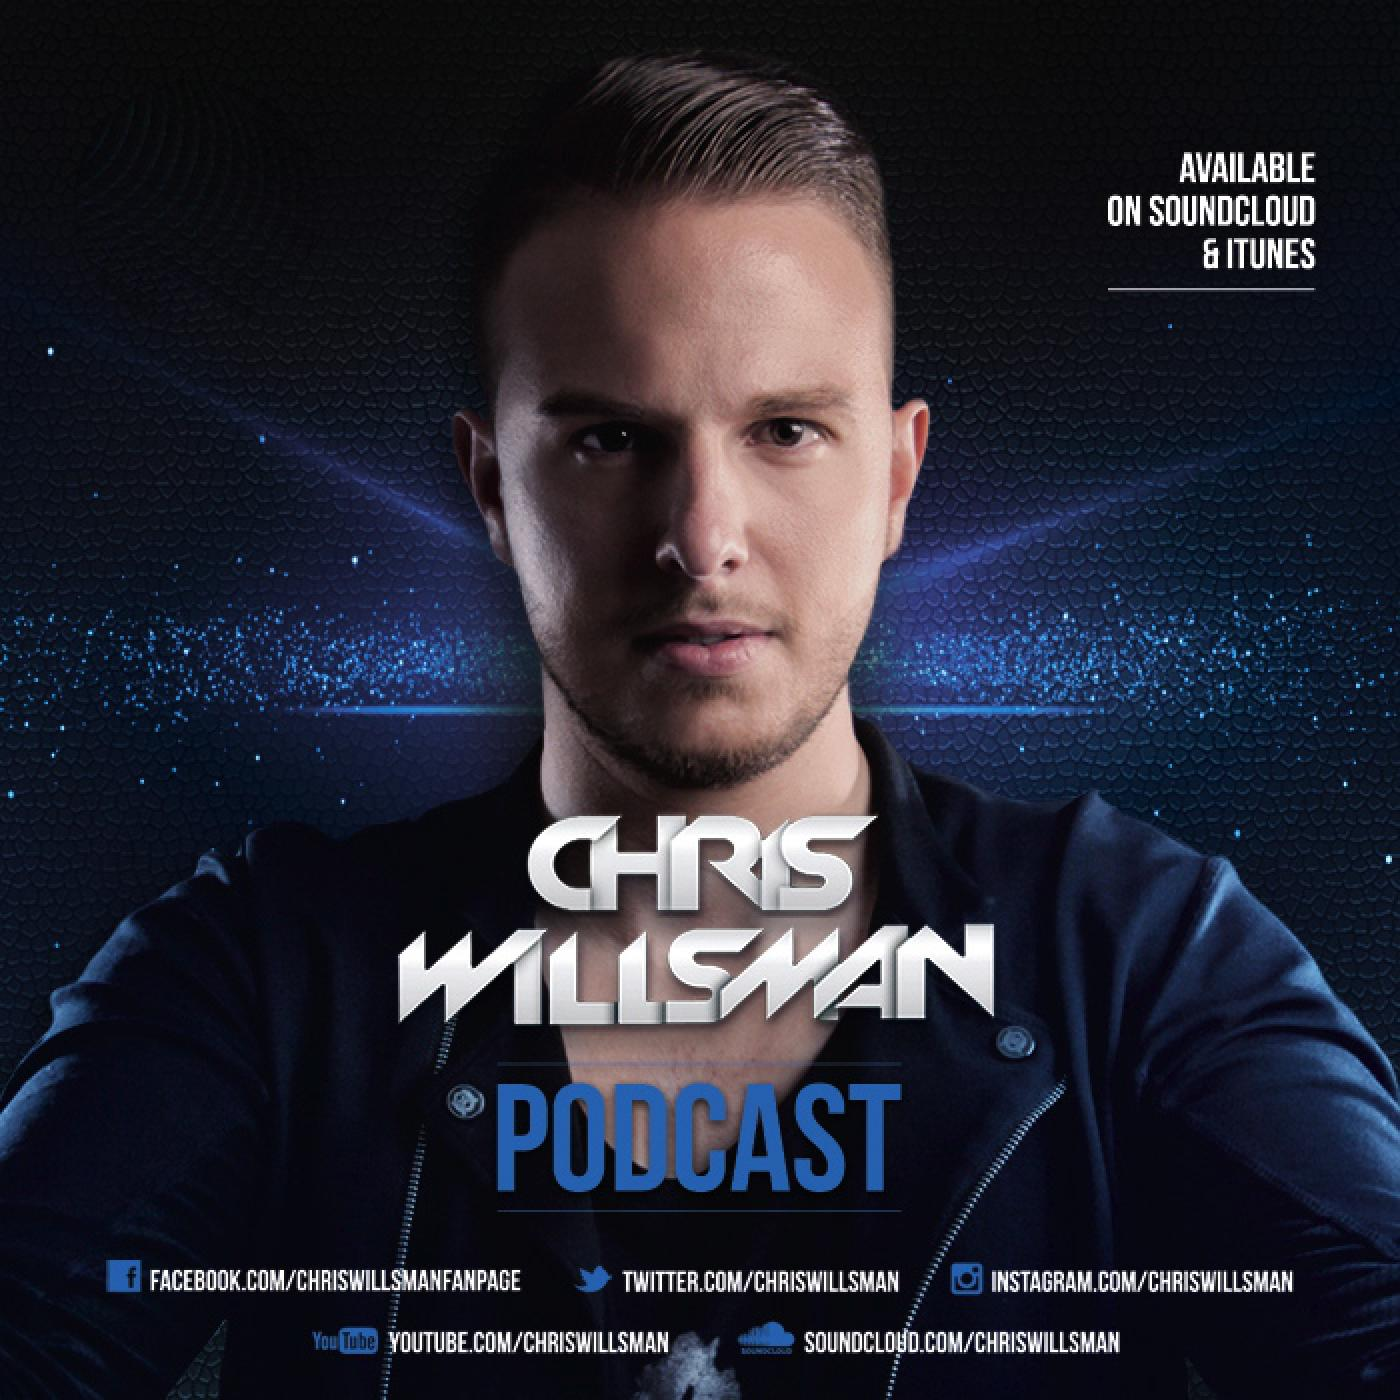 Chris Willsman Podcast